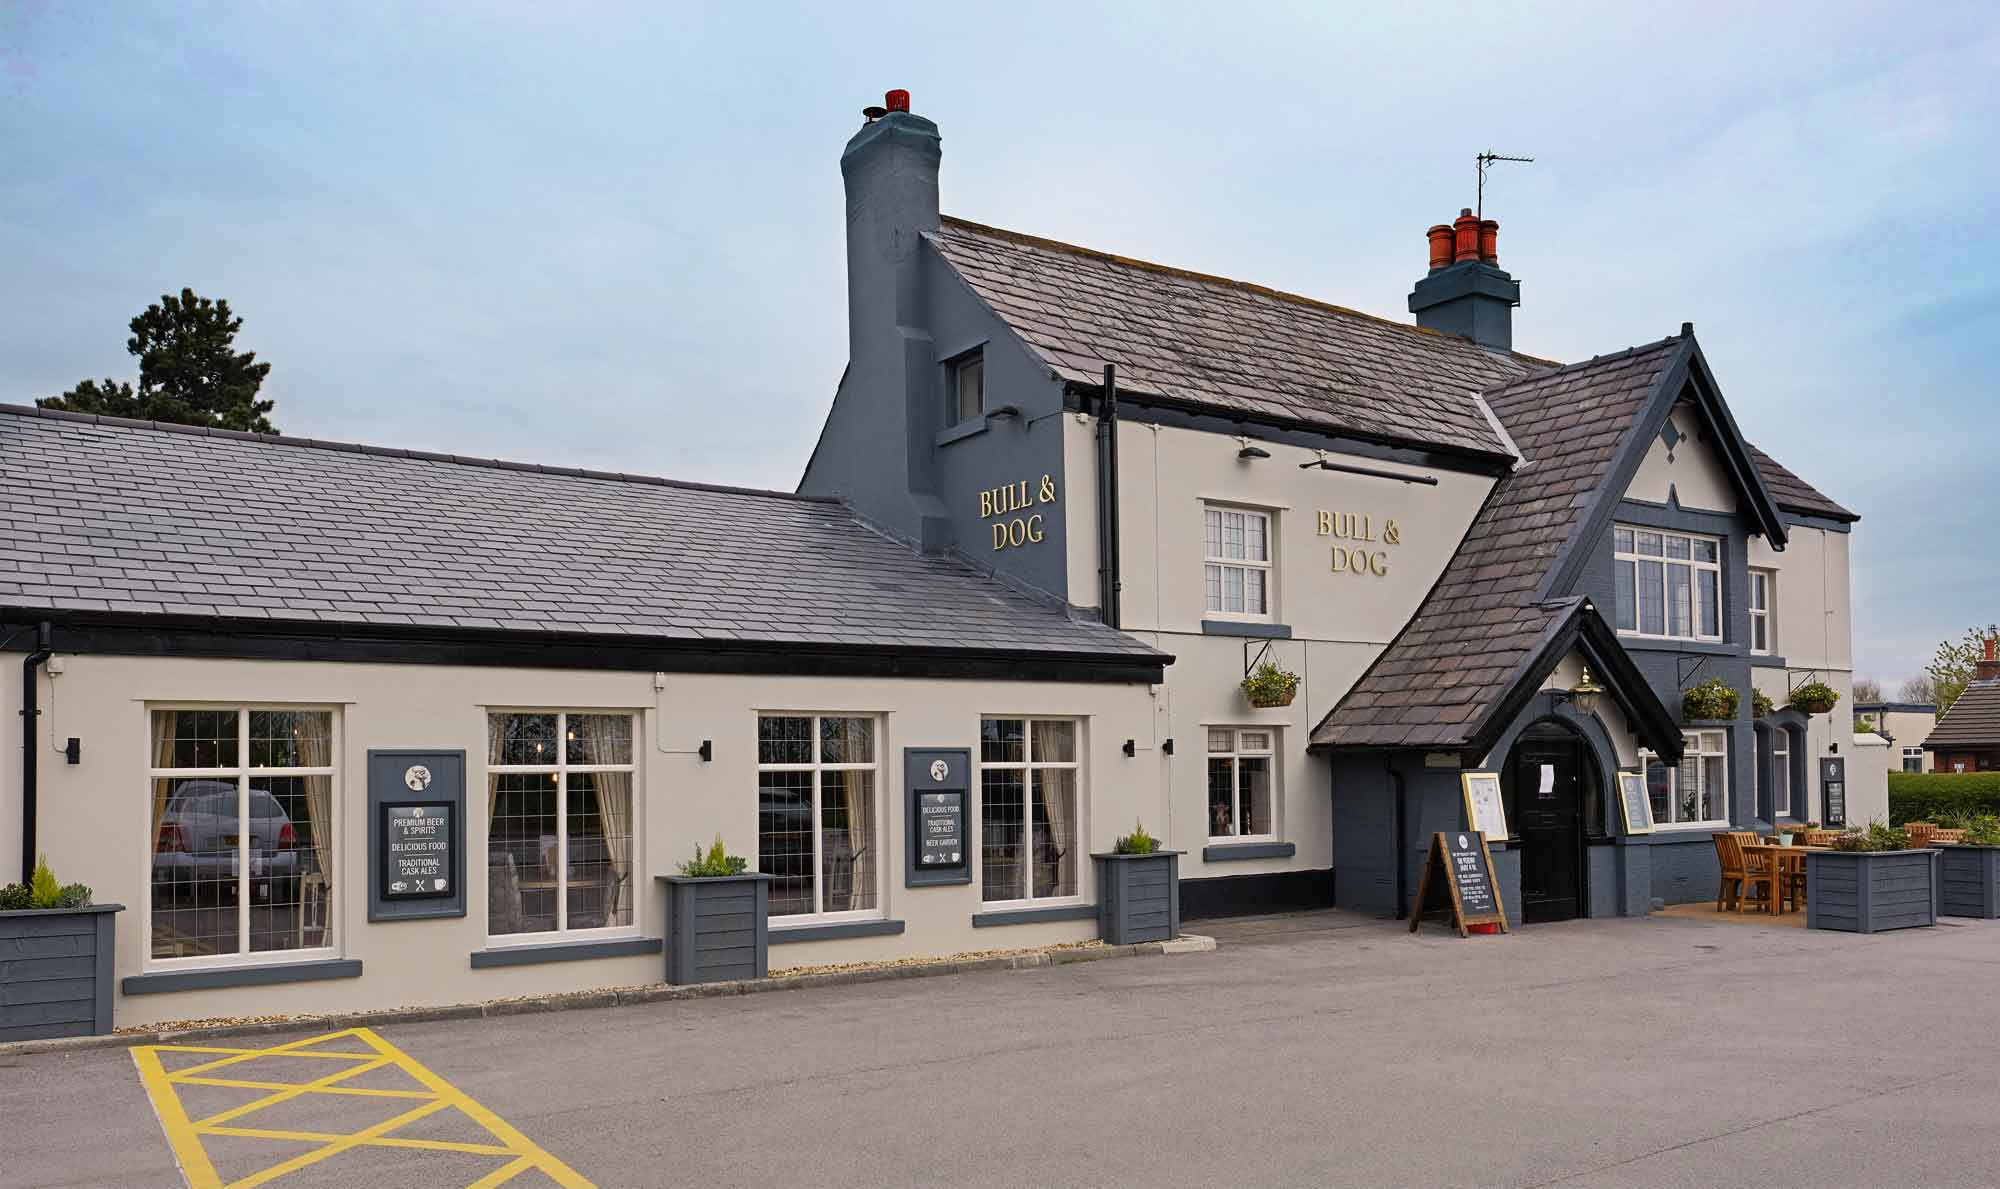 The Bull and Dog Pub in Burscough, Ormskirk.